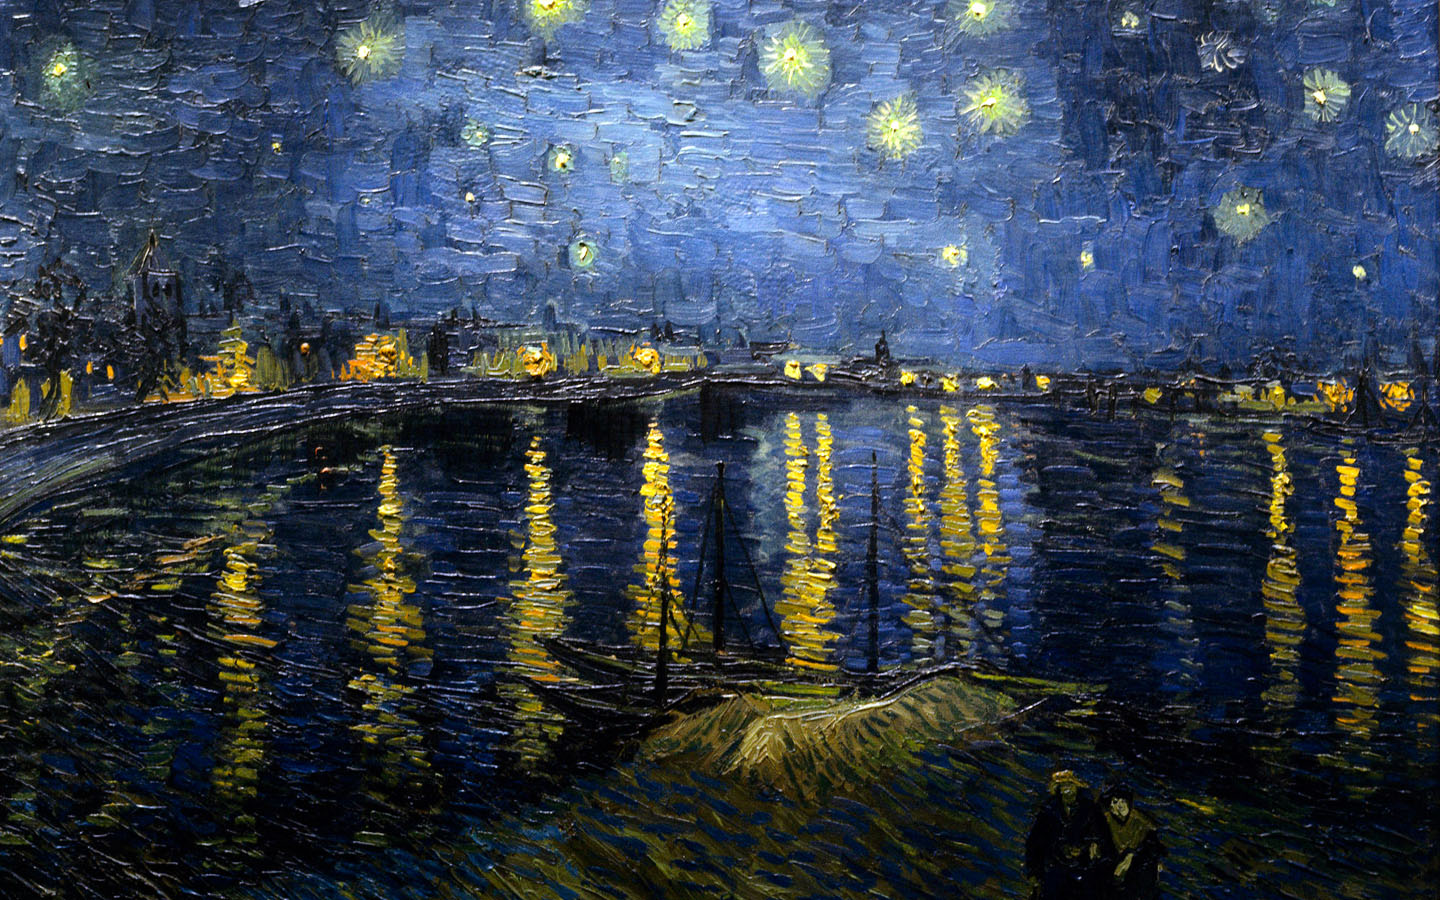 van gogh wallpaper Wallpapers 1440x900